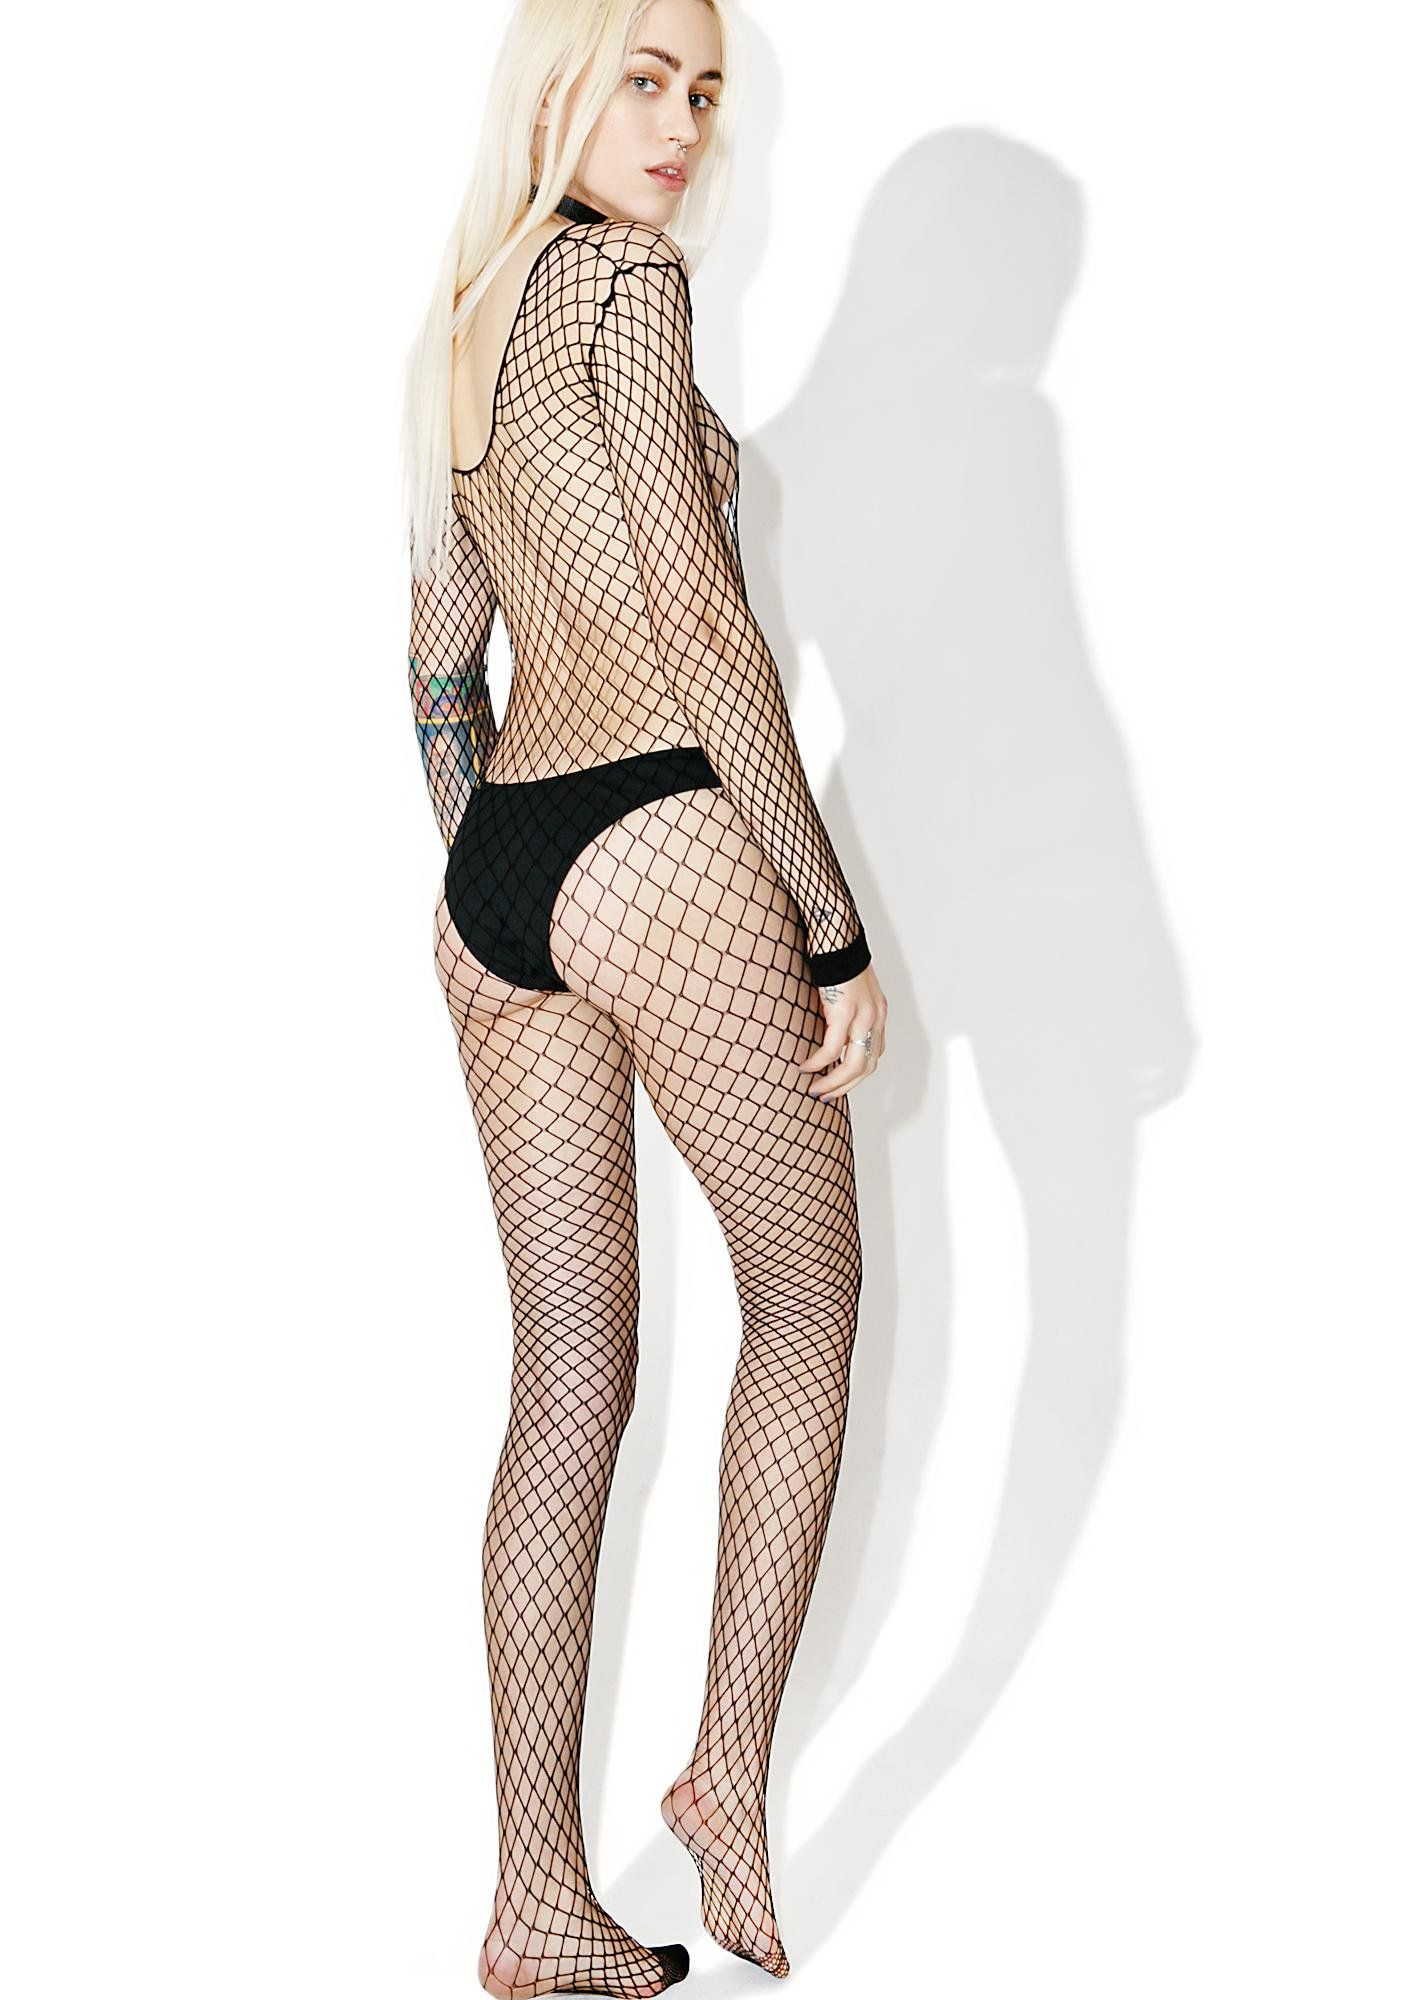 294f7fc994 Slipstream Fishnet Body Stocking in 2019